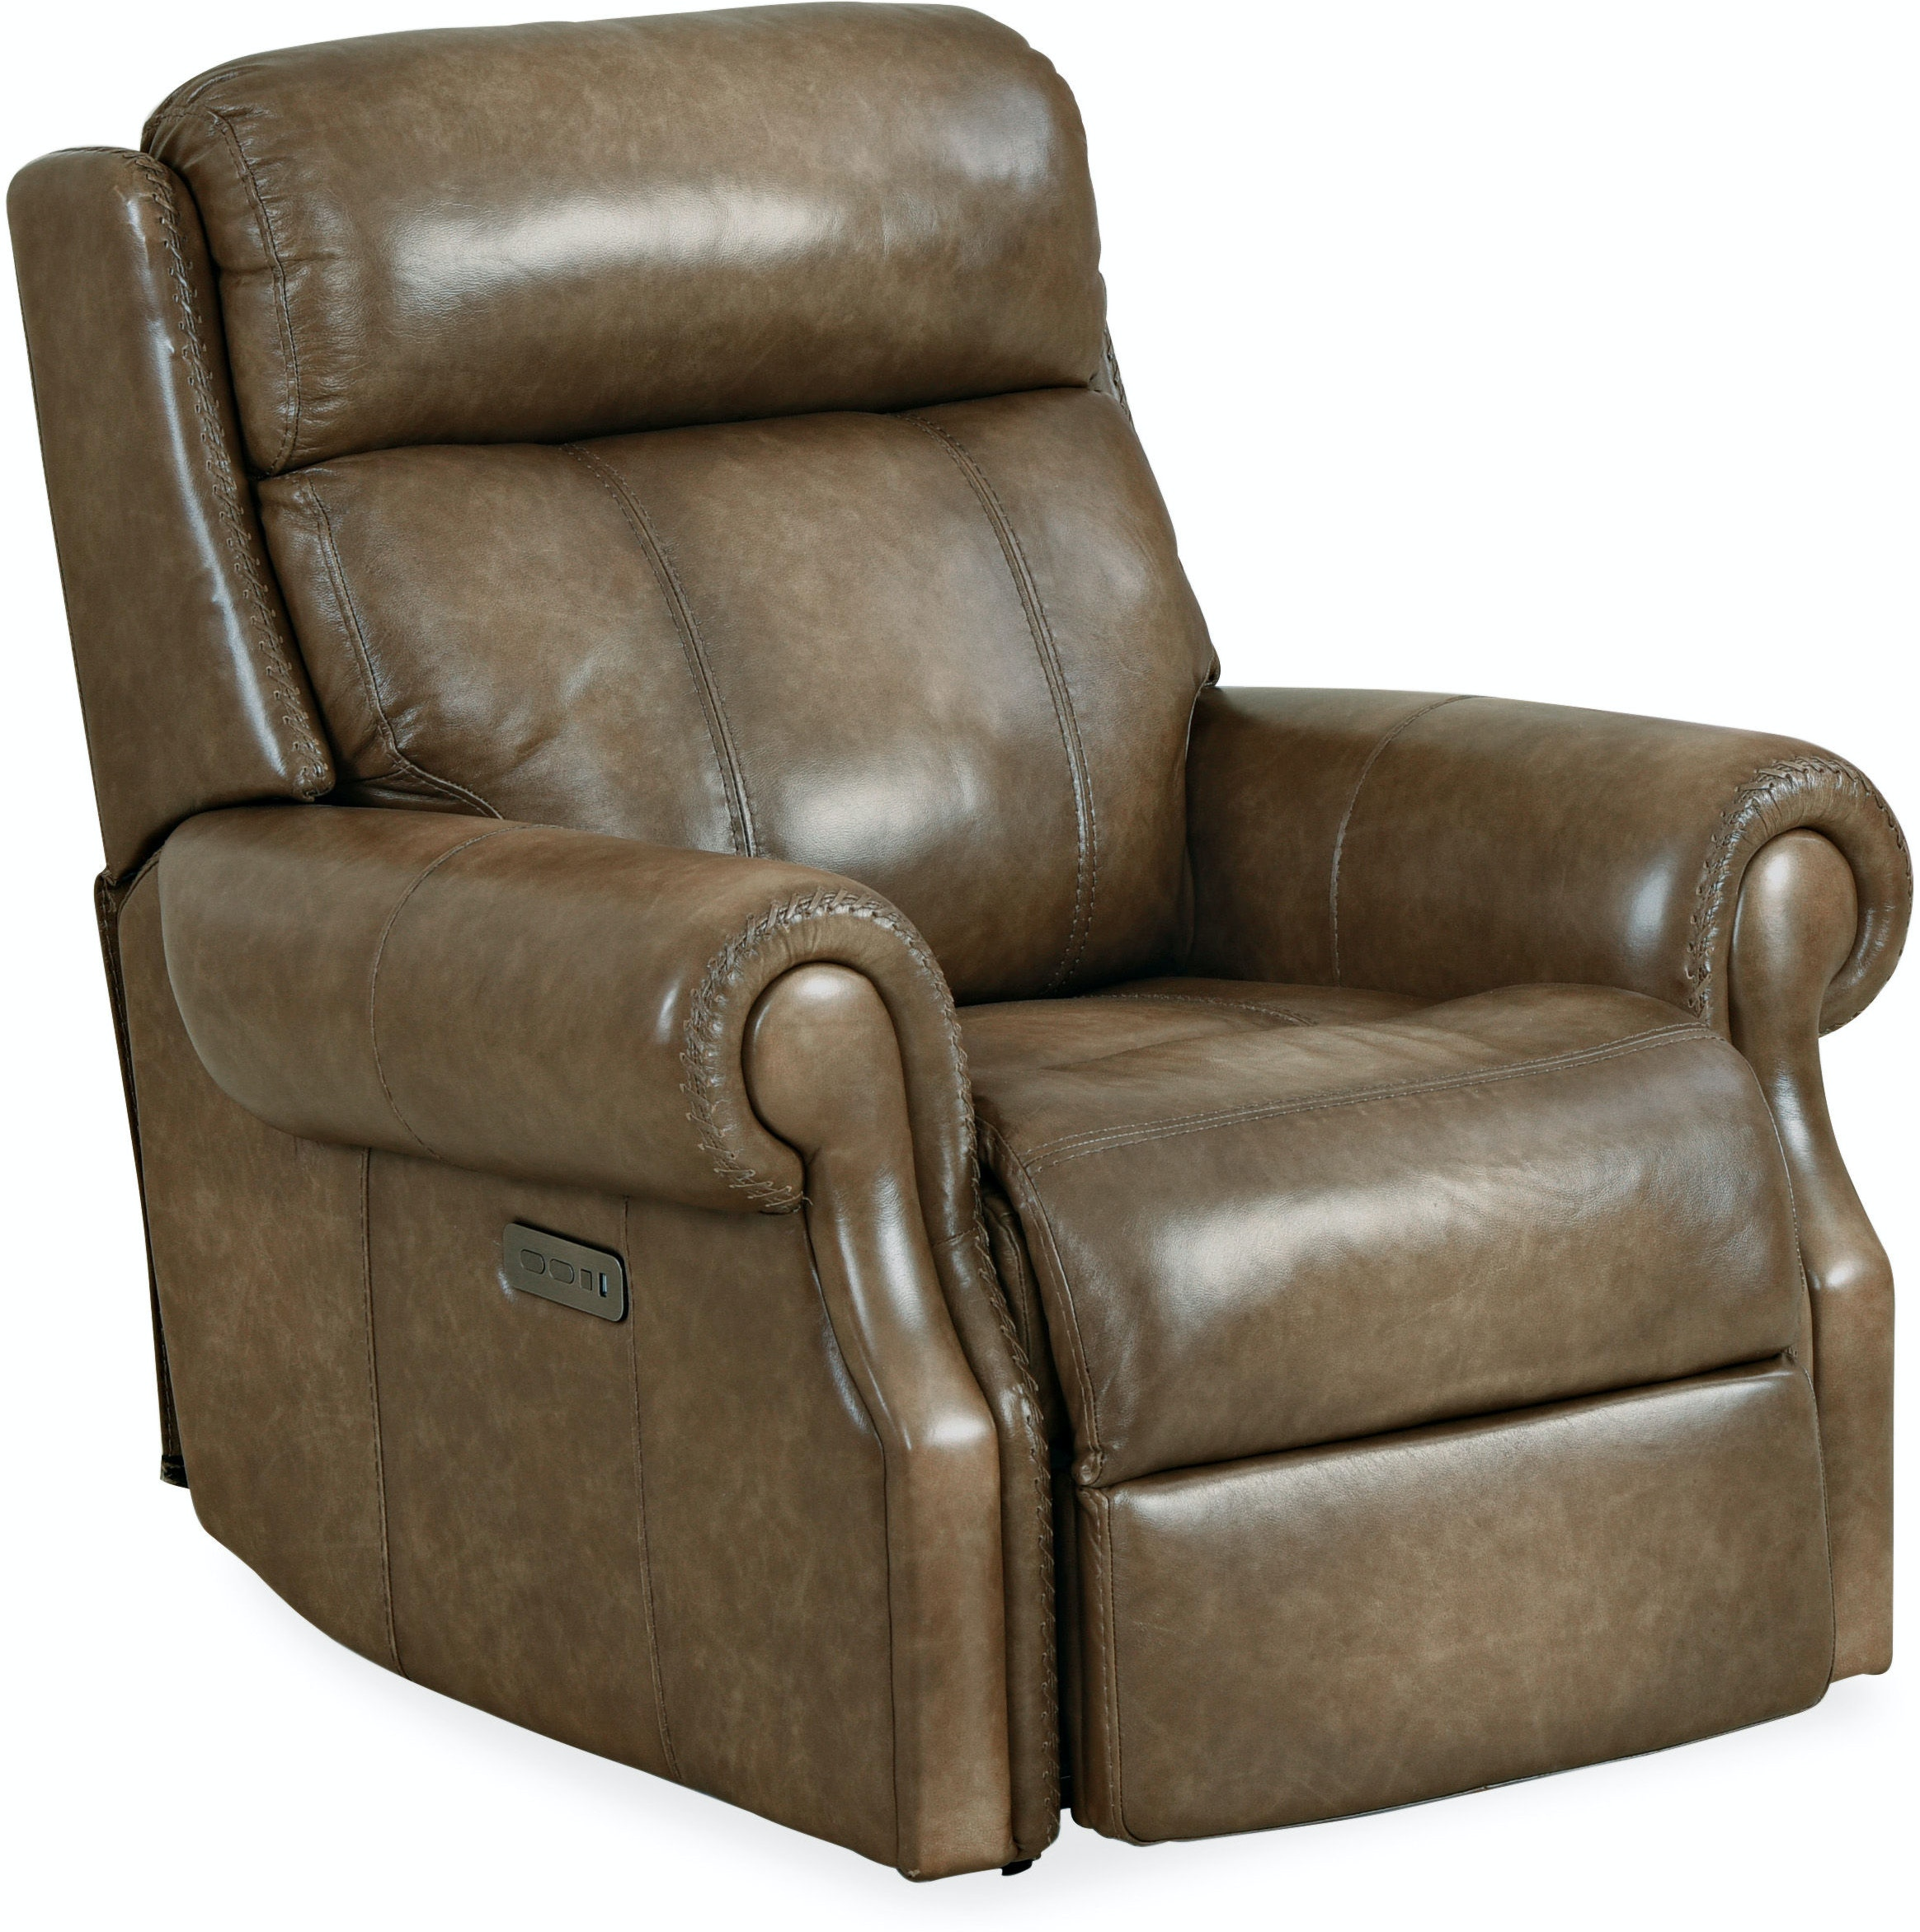 Outstanding Hooker Furniture Living Room Brooks Pwr Recliner W Pwr Pabps2019 Chair Design Images Pabps2019Com